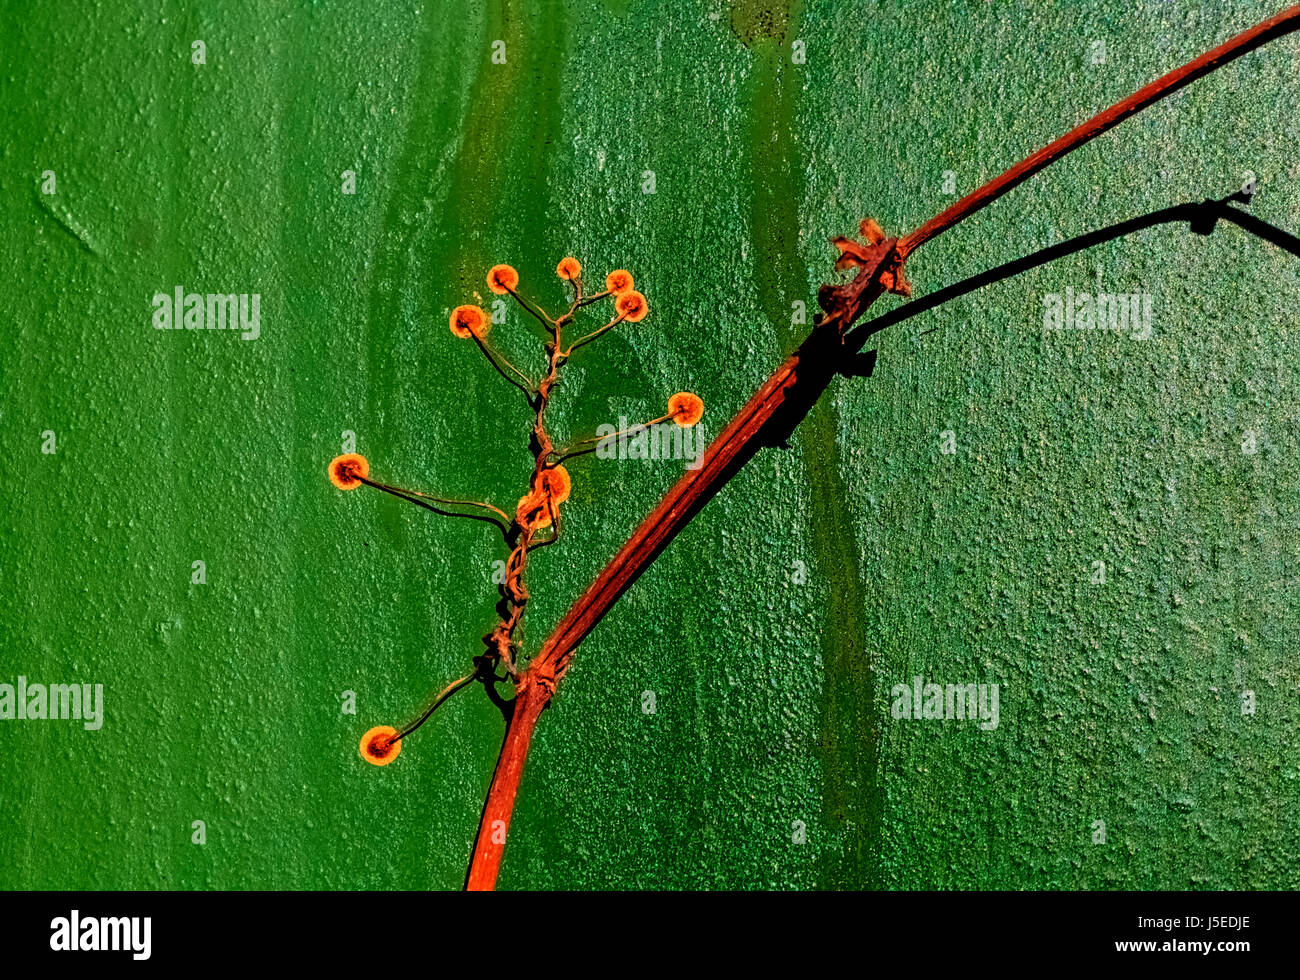 Dried adherent pucks of climbing or creeping wide grape plant  on a green pinch door, between shadows of the surrounding - Stock Image